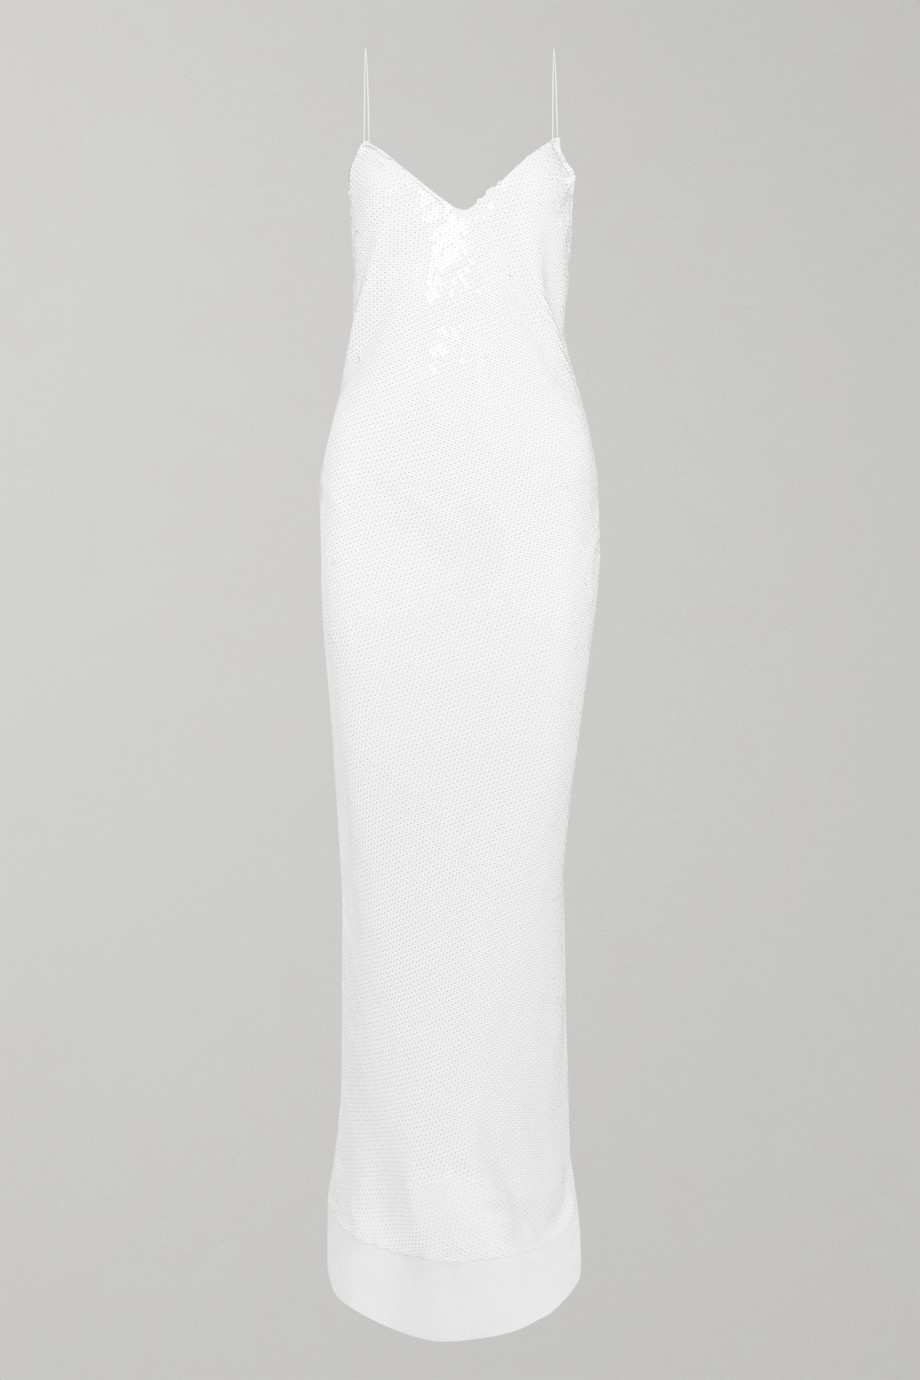 STELLA MCCARTNEY Sequined silk-chiffon gown